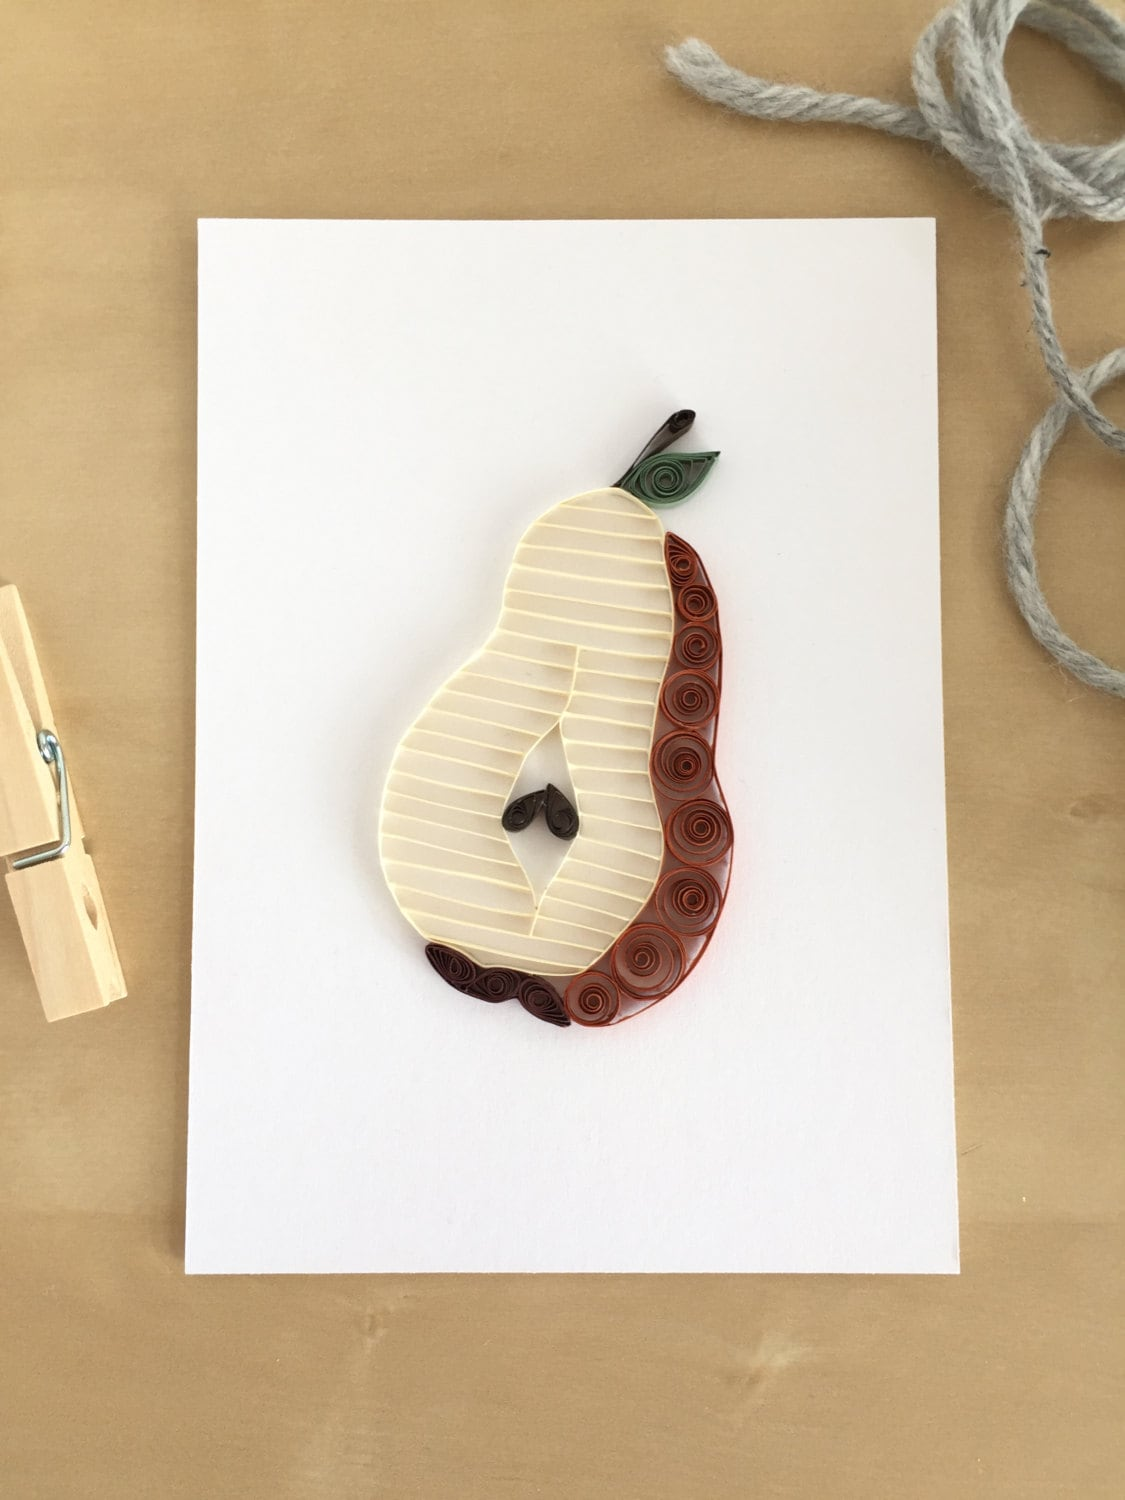 Quilling paper bosc pear home decor brown pear wall decor Pear home decor